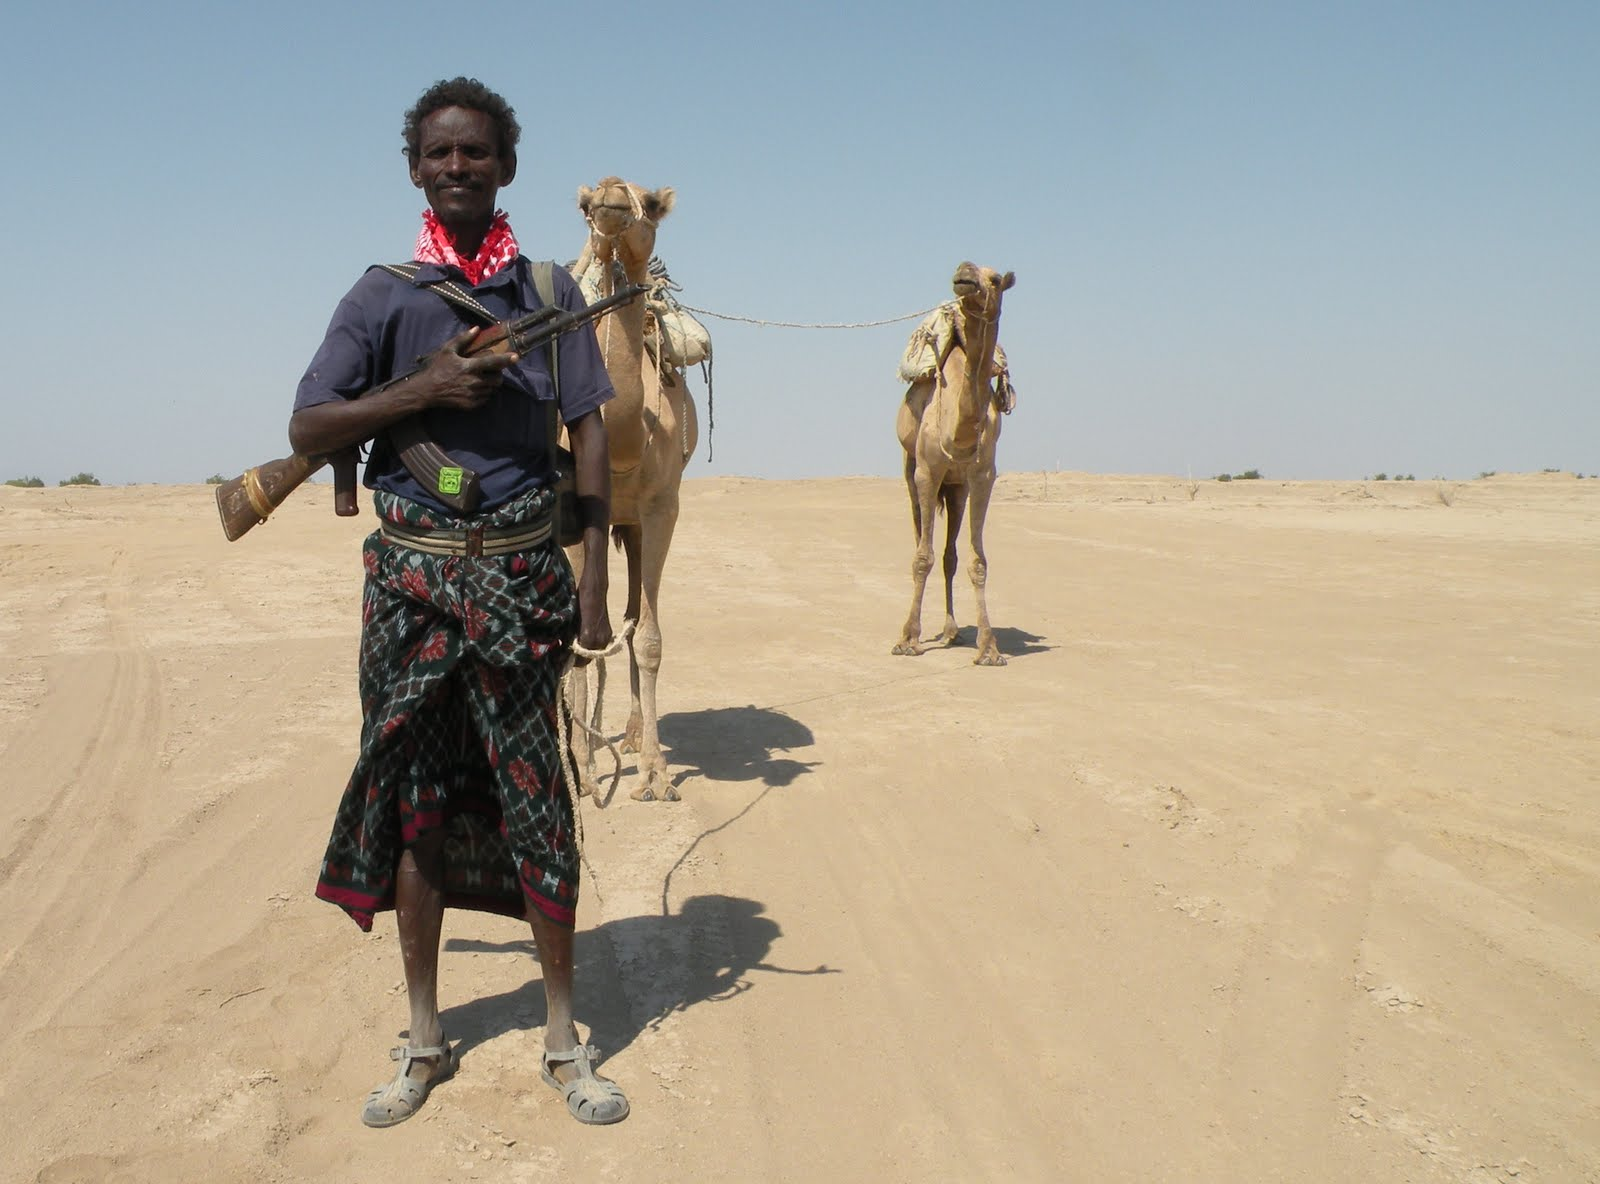 An Afar villager who helped us when our Jeep broke down.